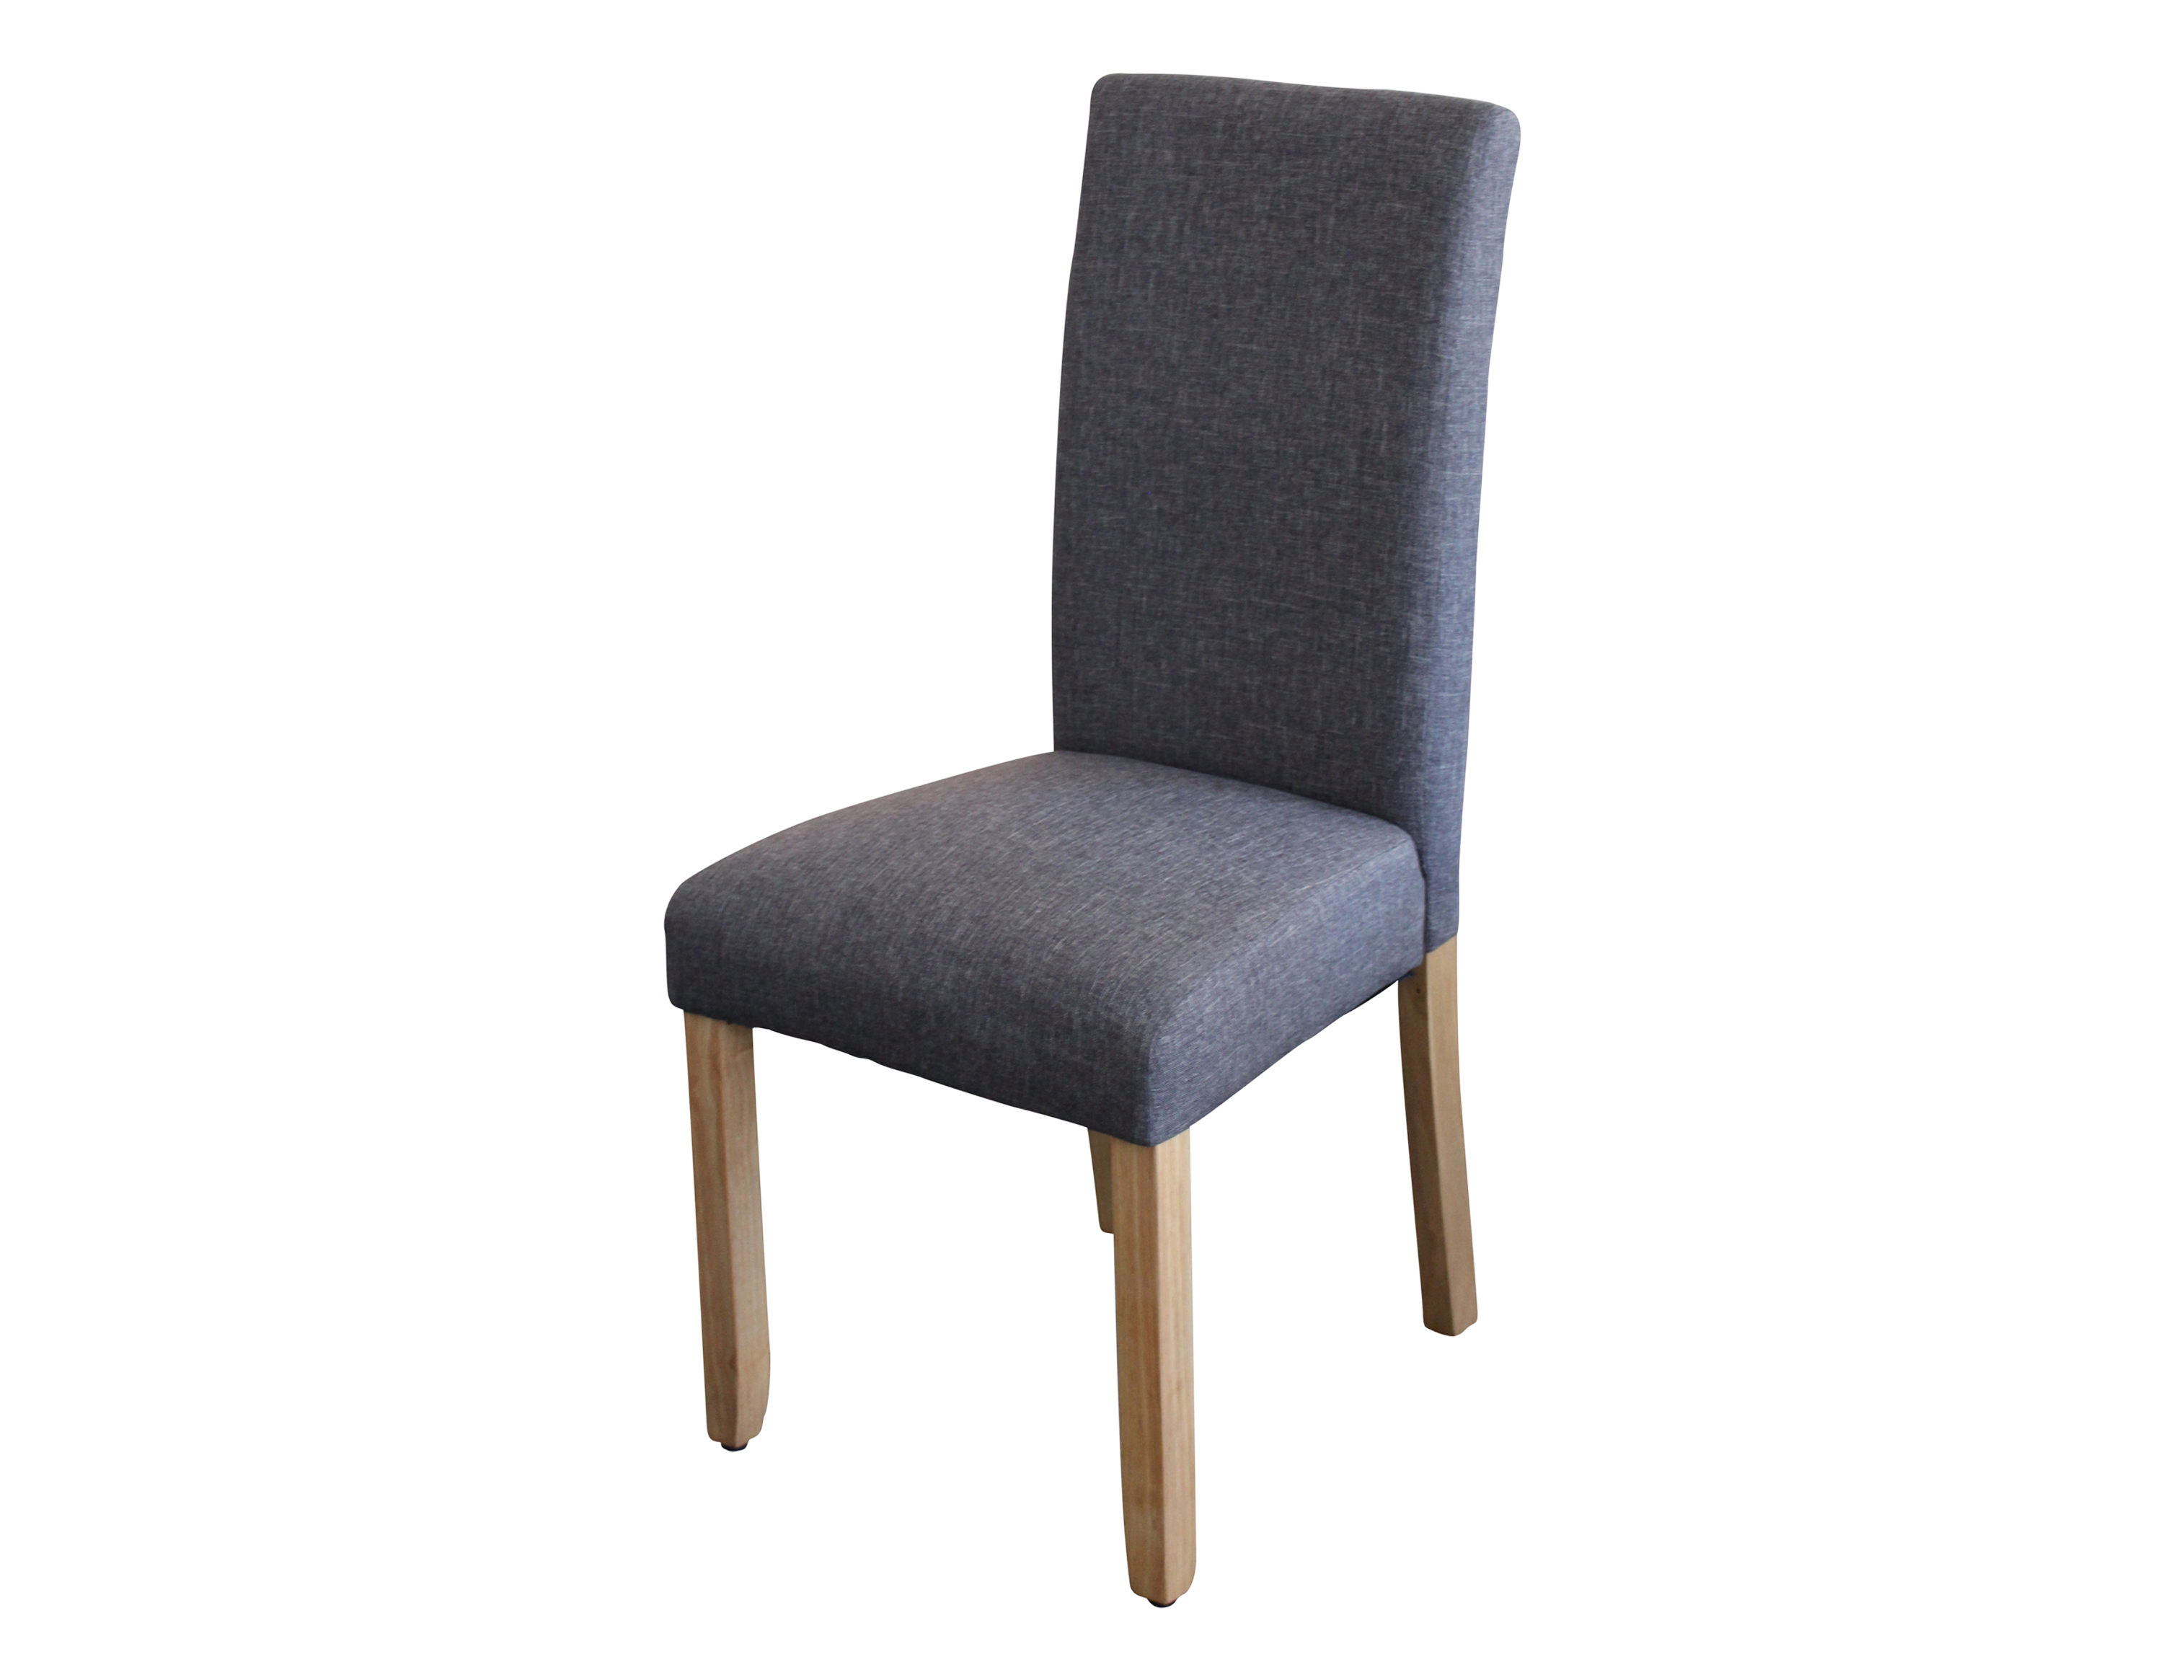 ashton dining chair upholstered in dark grey fabric